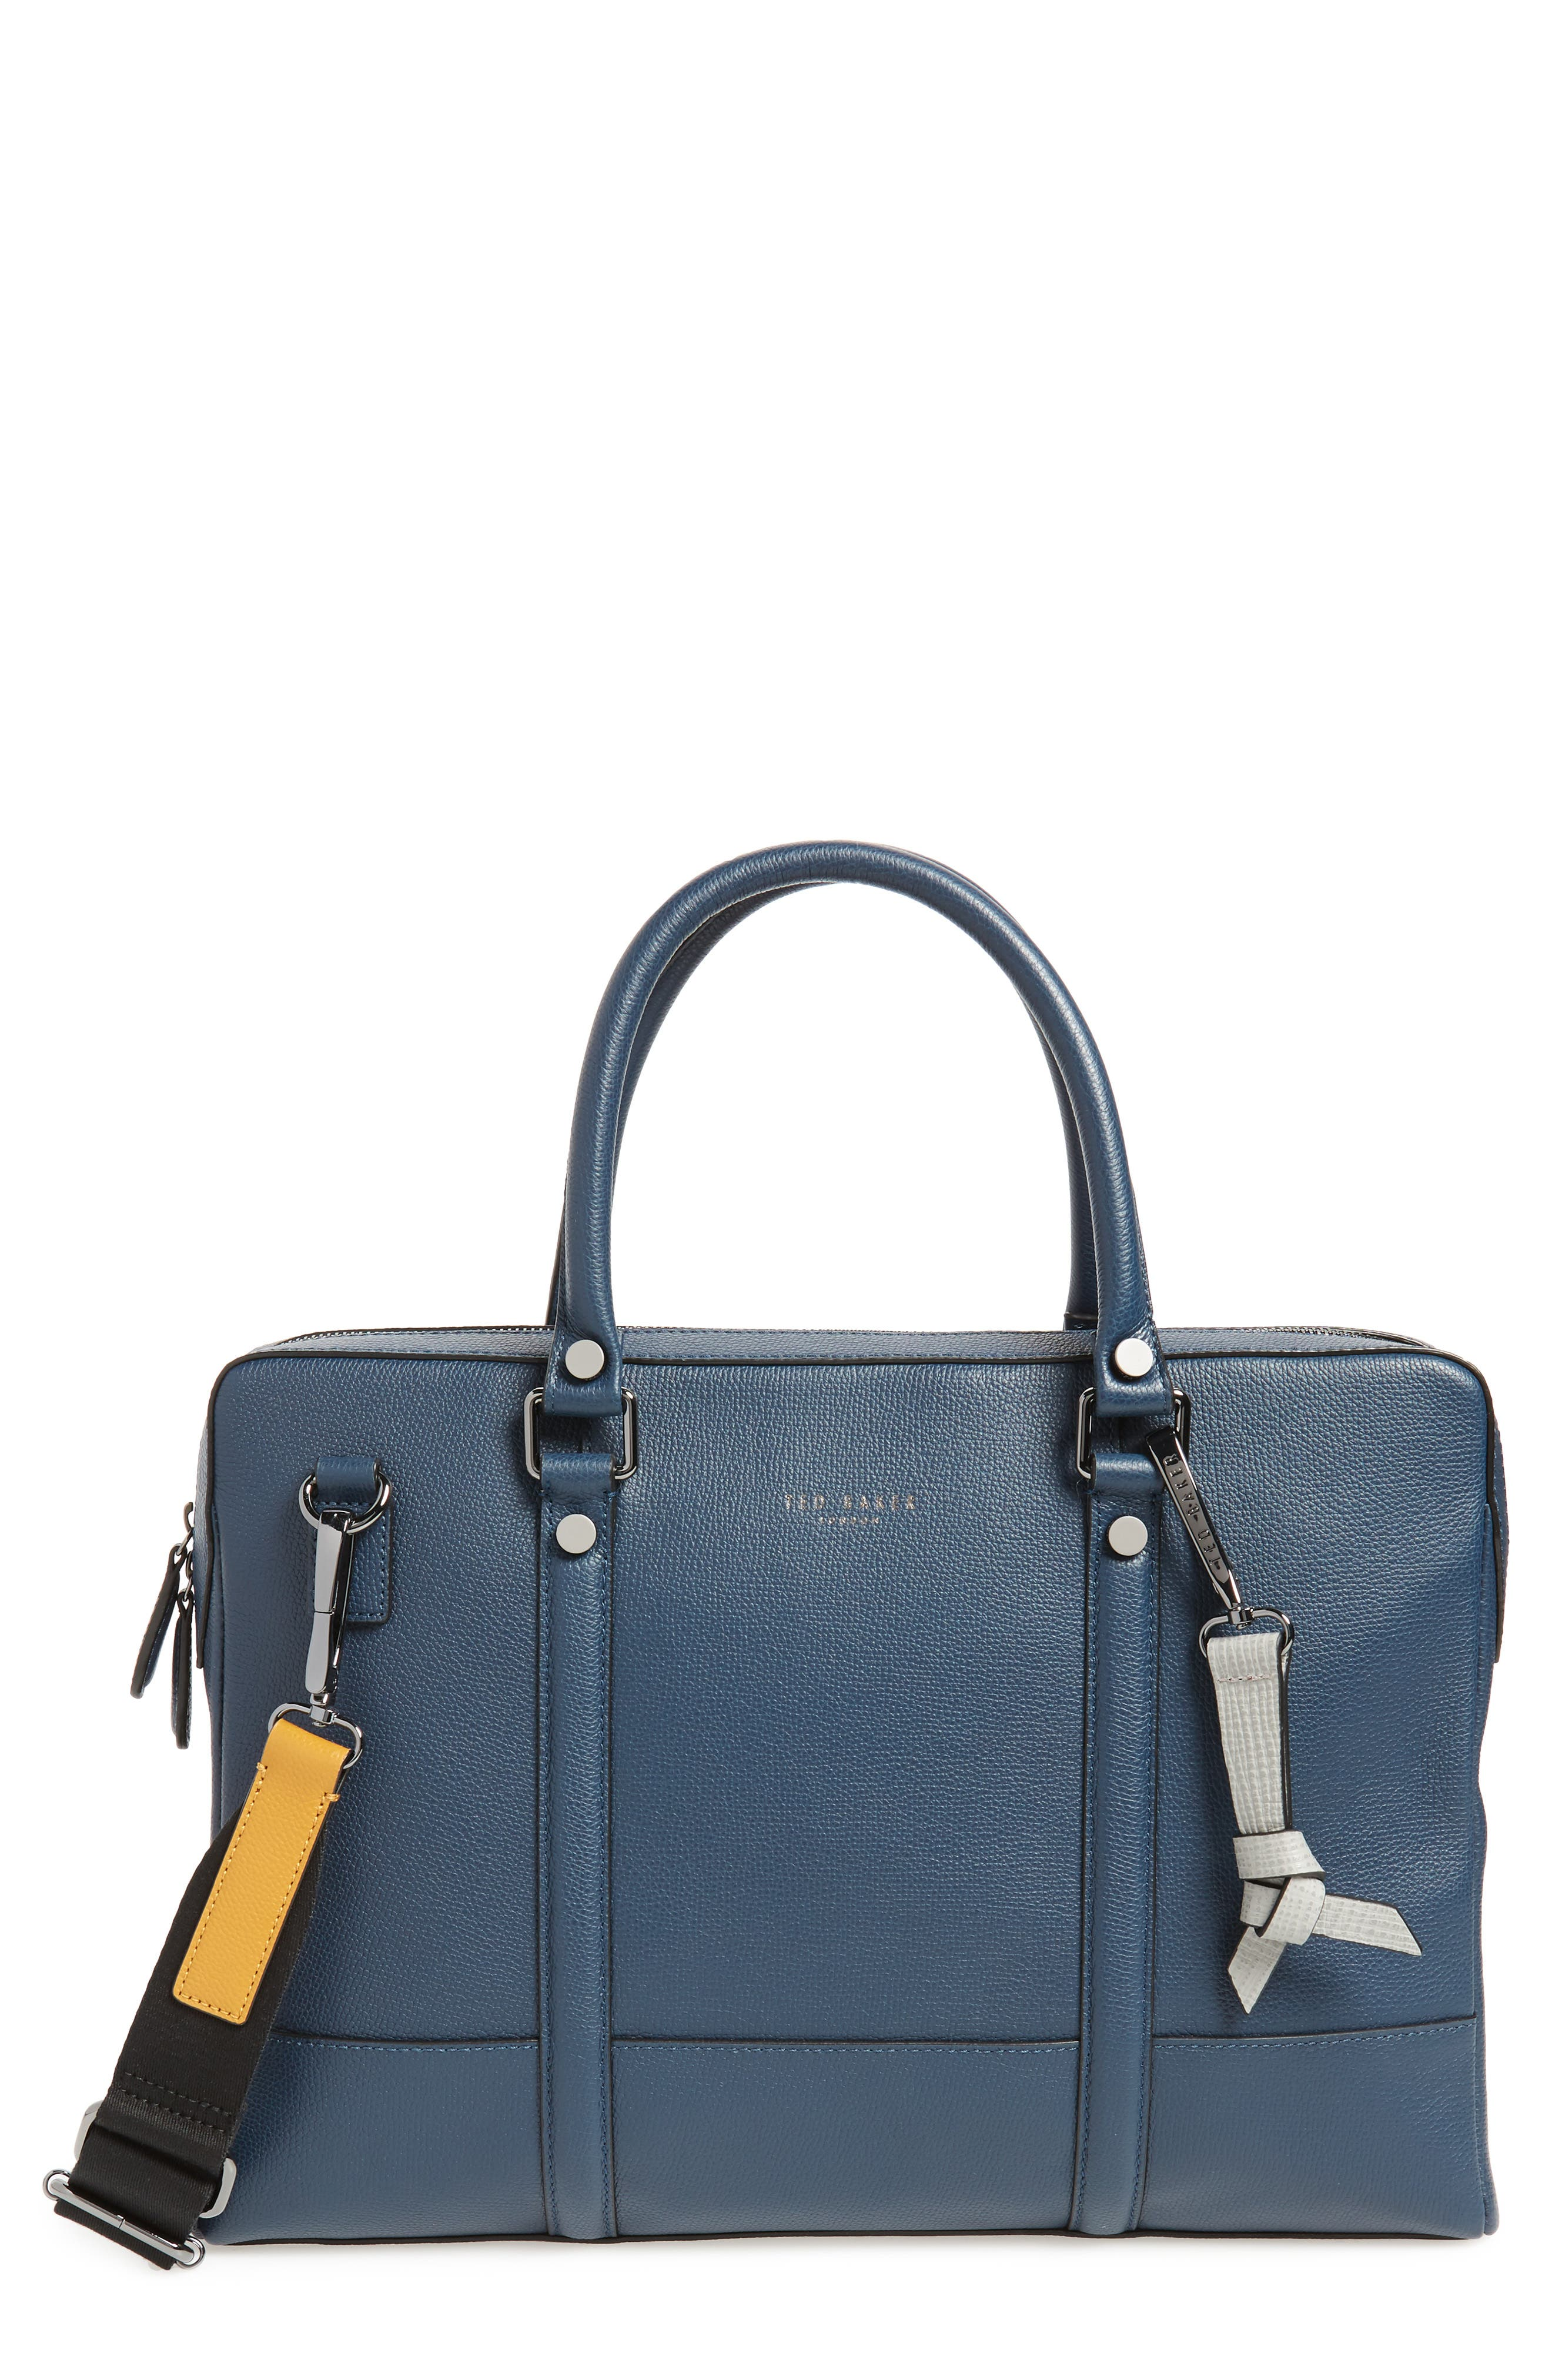 AWOL Leather Document Bag,                             Main thumbnail 1, color,                             NAVY